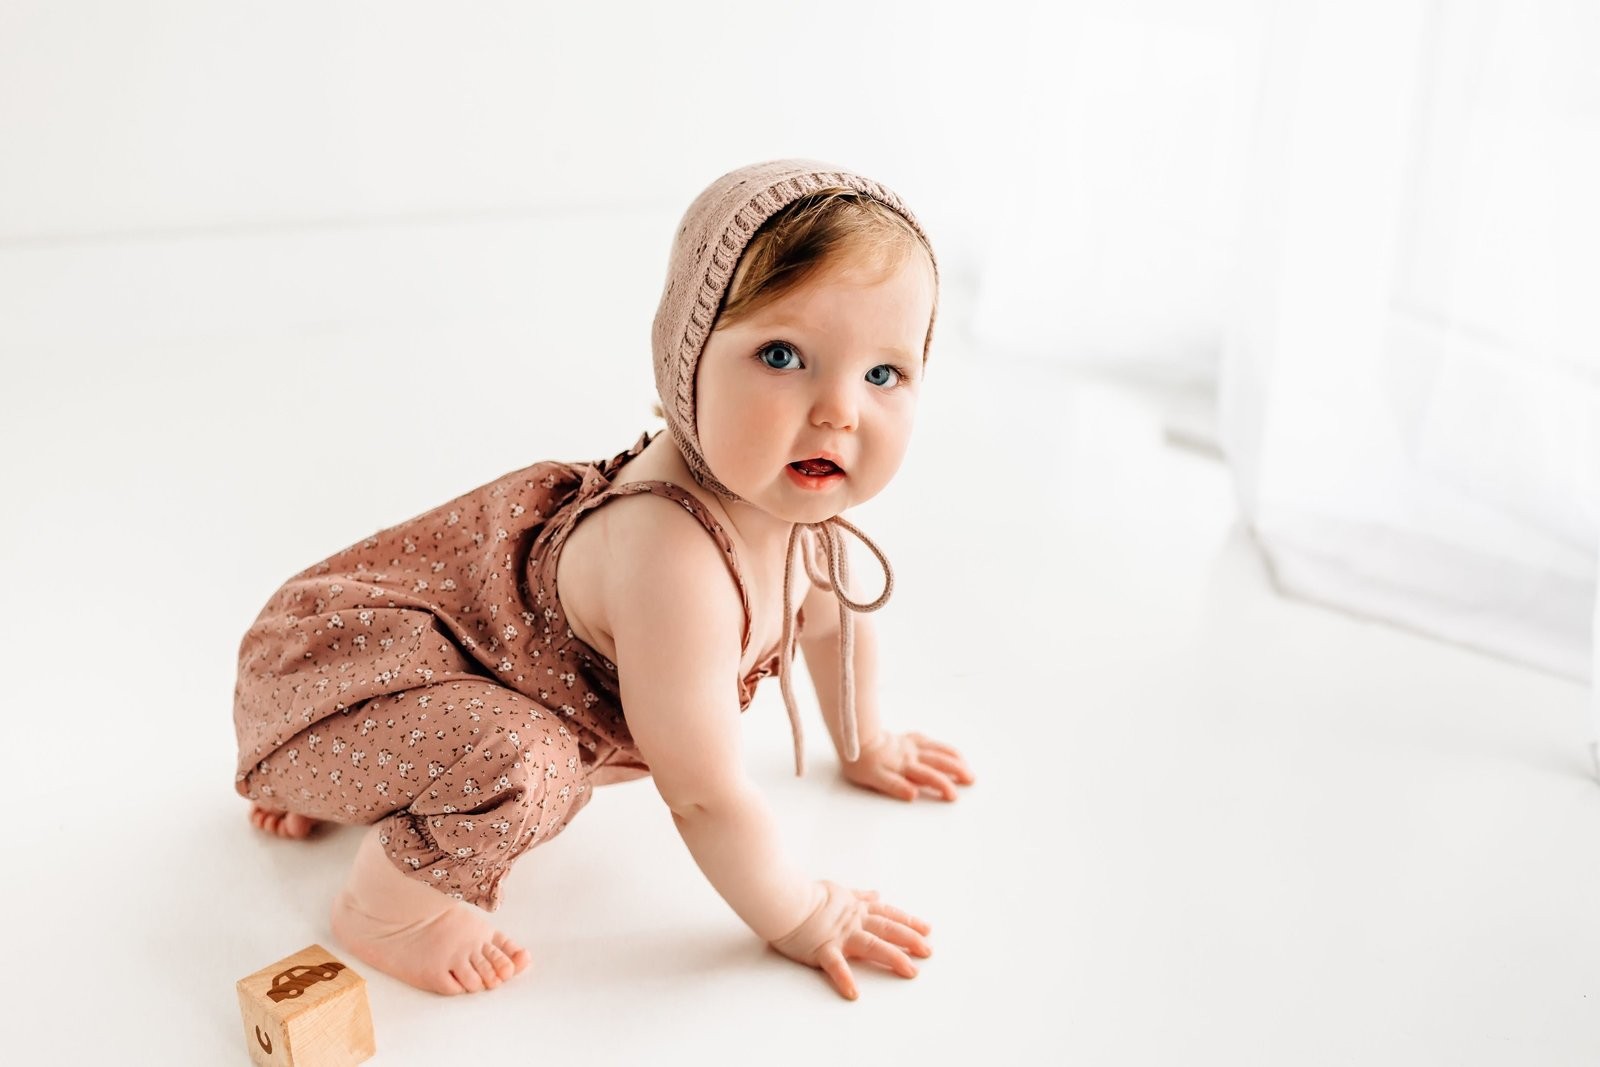 St_Louis_Baby_Photographer_Kelly_Laramore_Photography_23